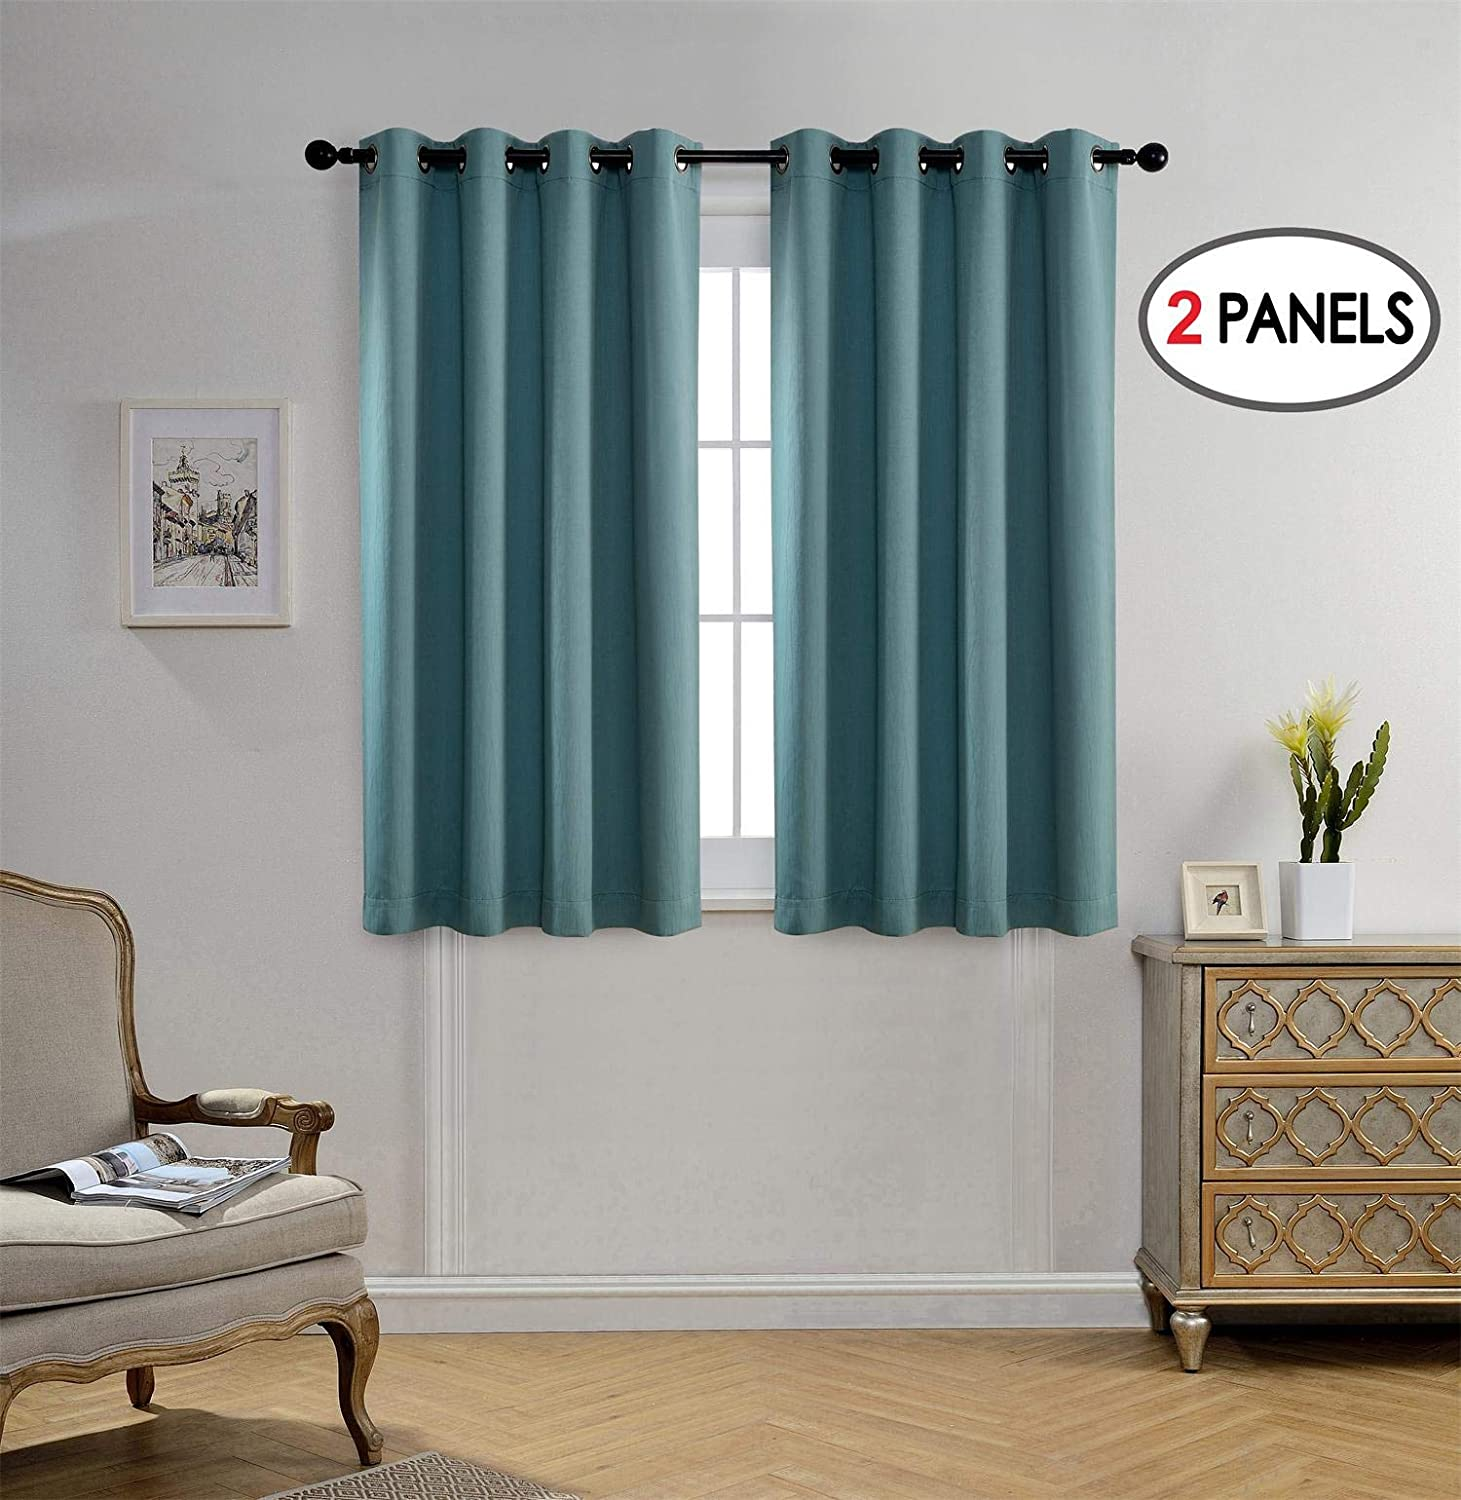 Miuco Blackout Curtains Room Darkening Curtains Textured Grommet